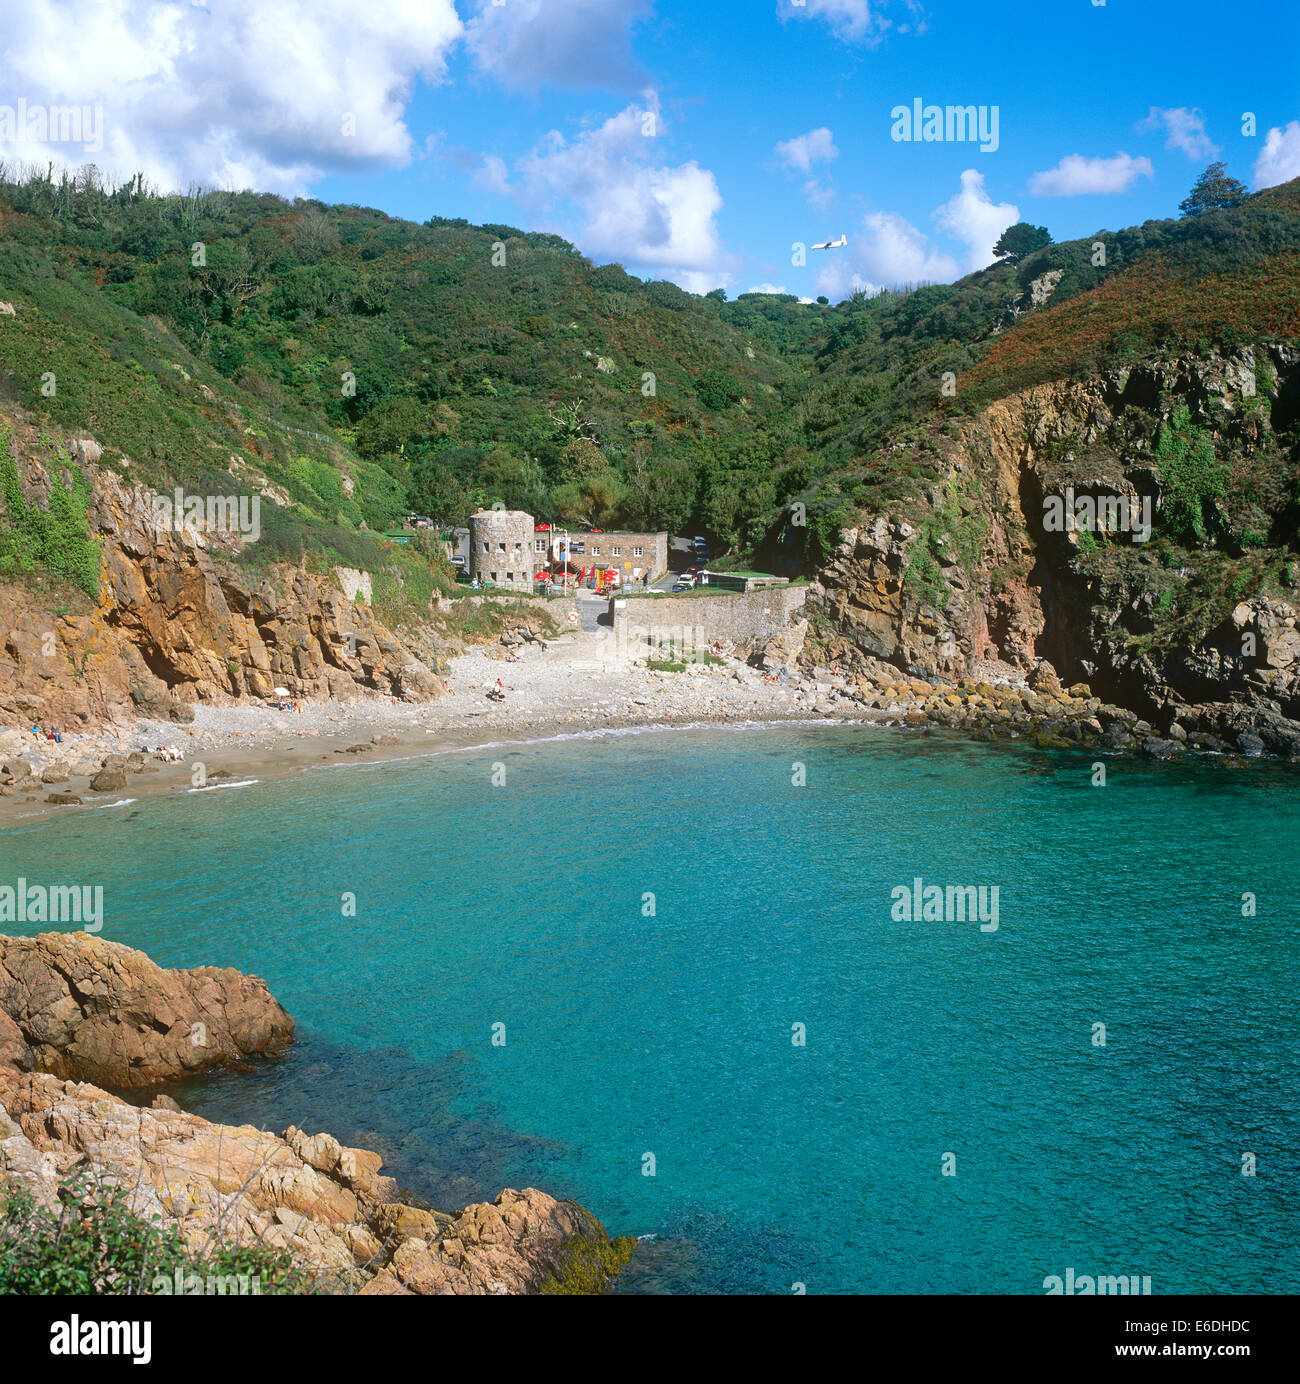 Petit Bot Bay Forest in Guermseu Channel Islands - Stock Image